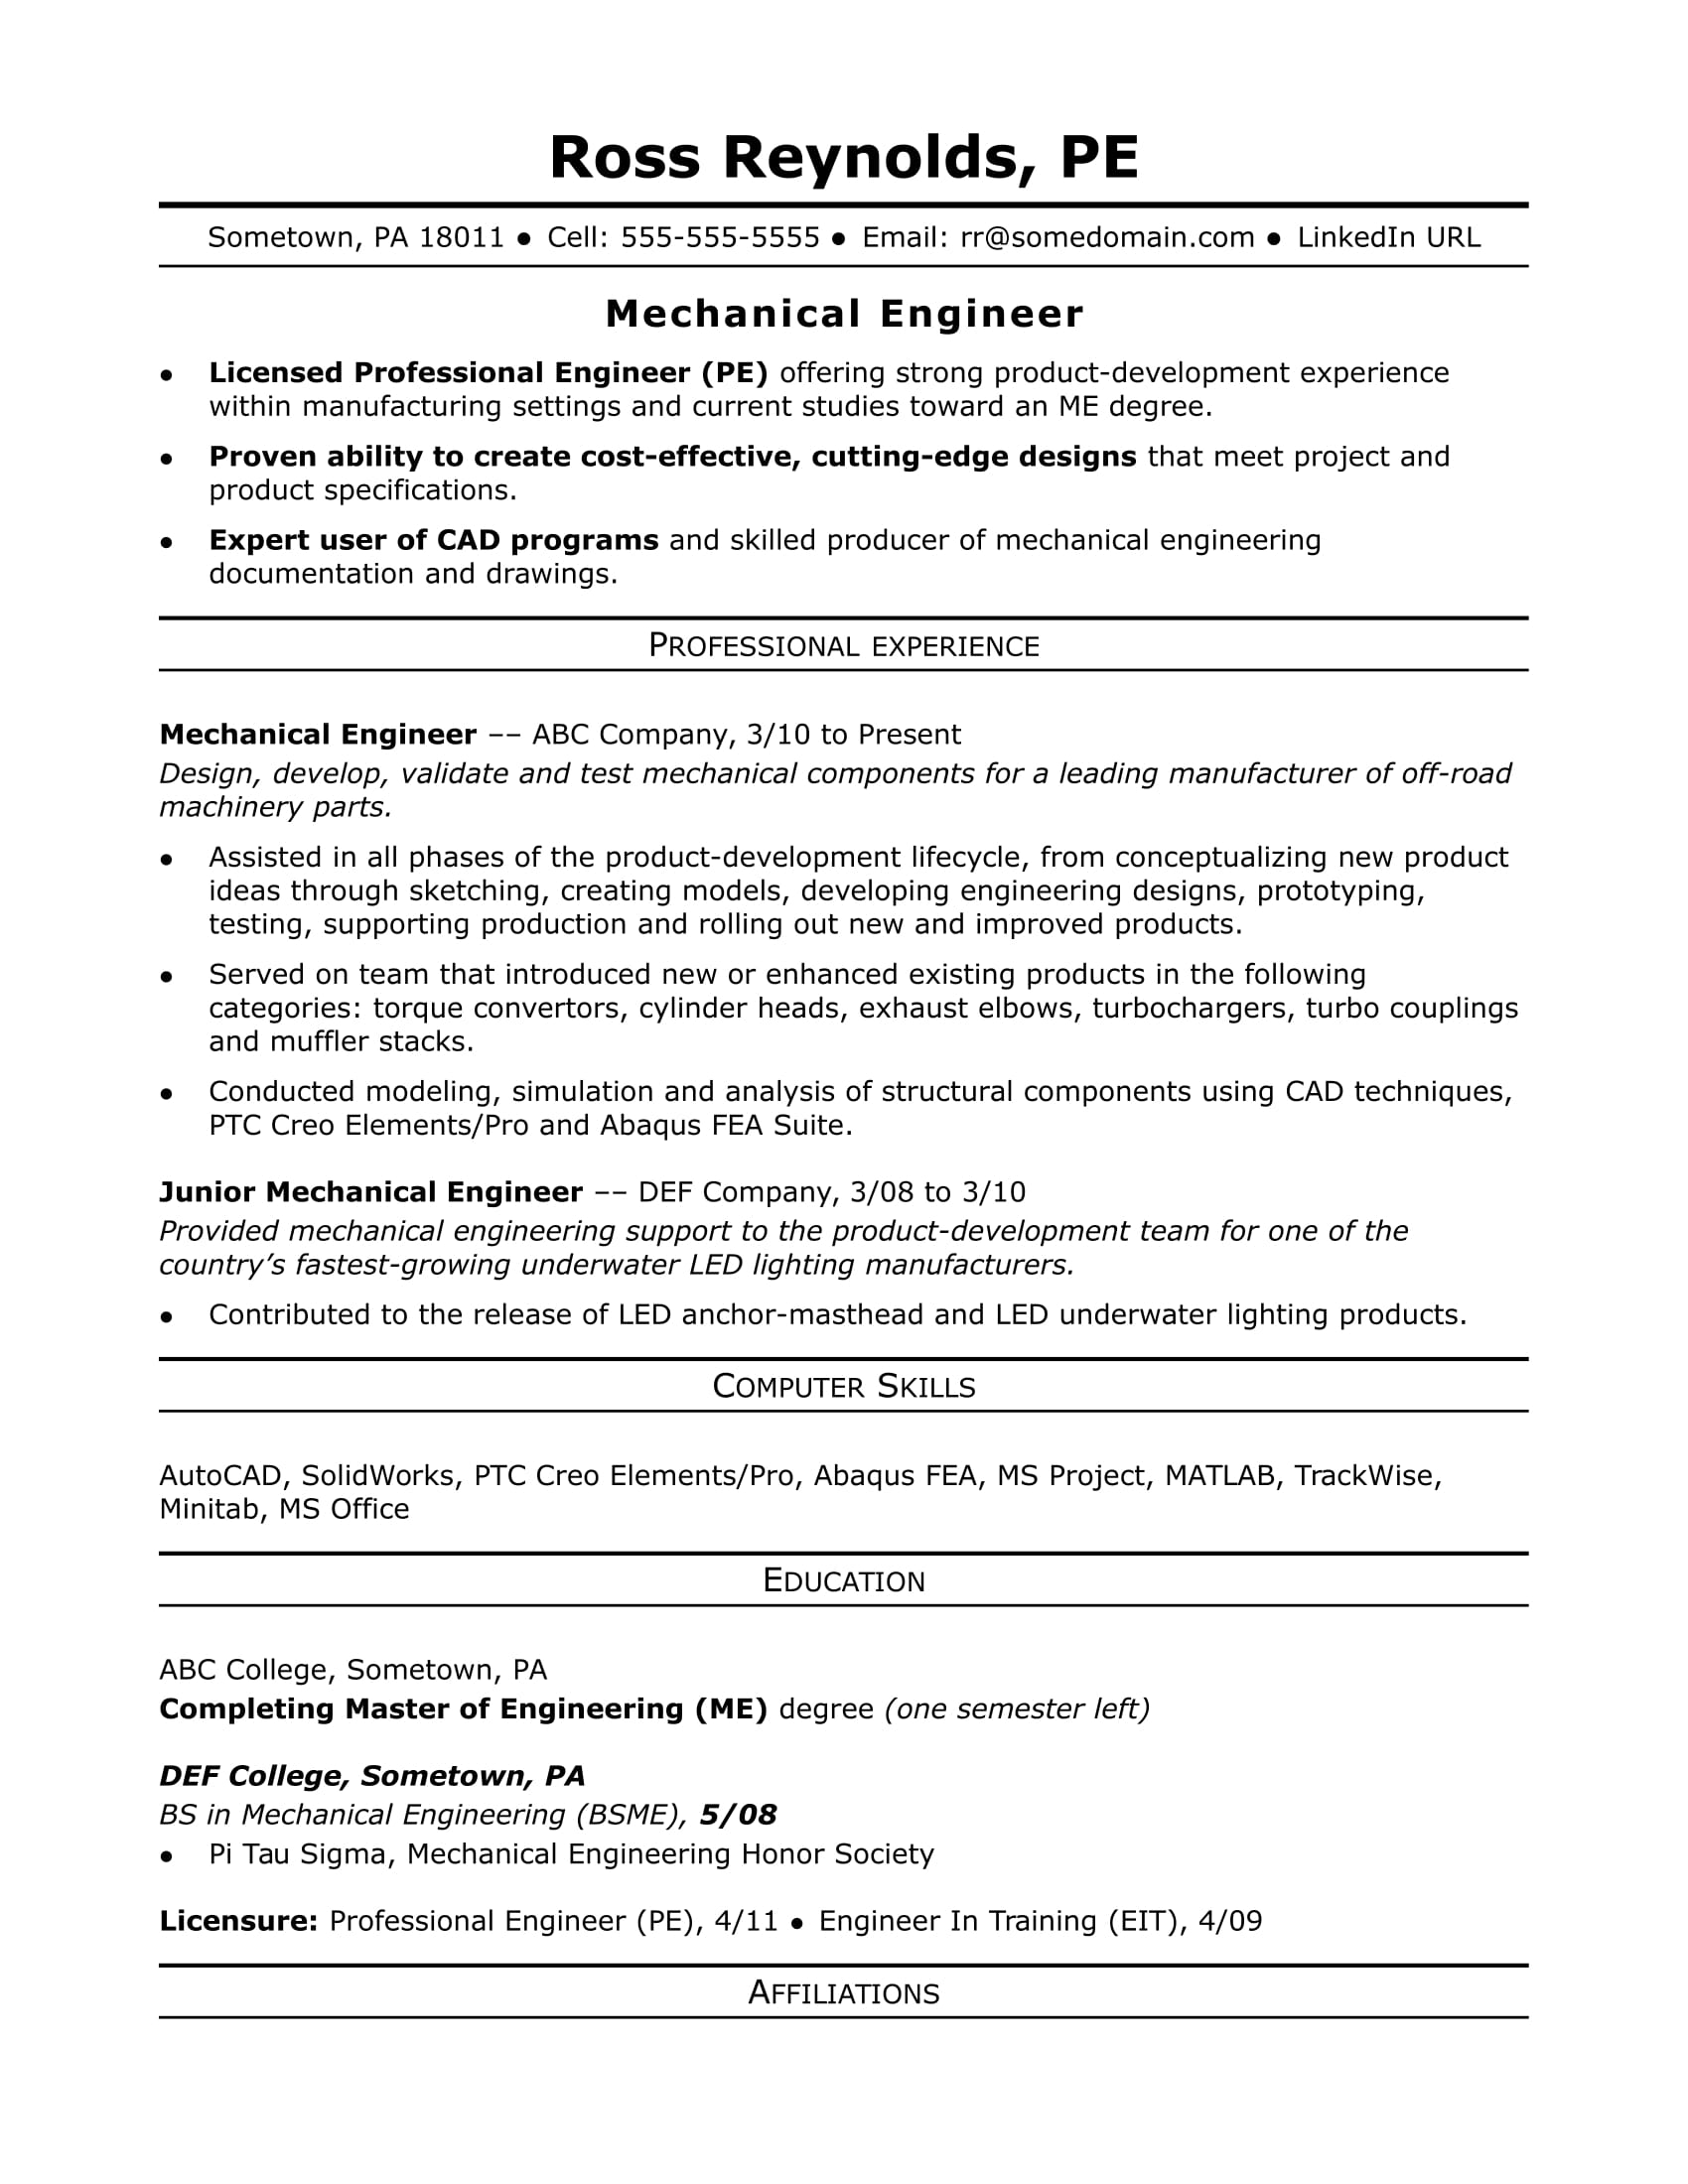 Charming Sample Resume For A Midlevel Mechanical Engineer On Resume Examples Engineering